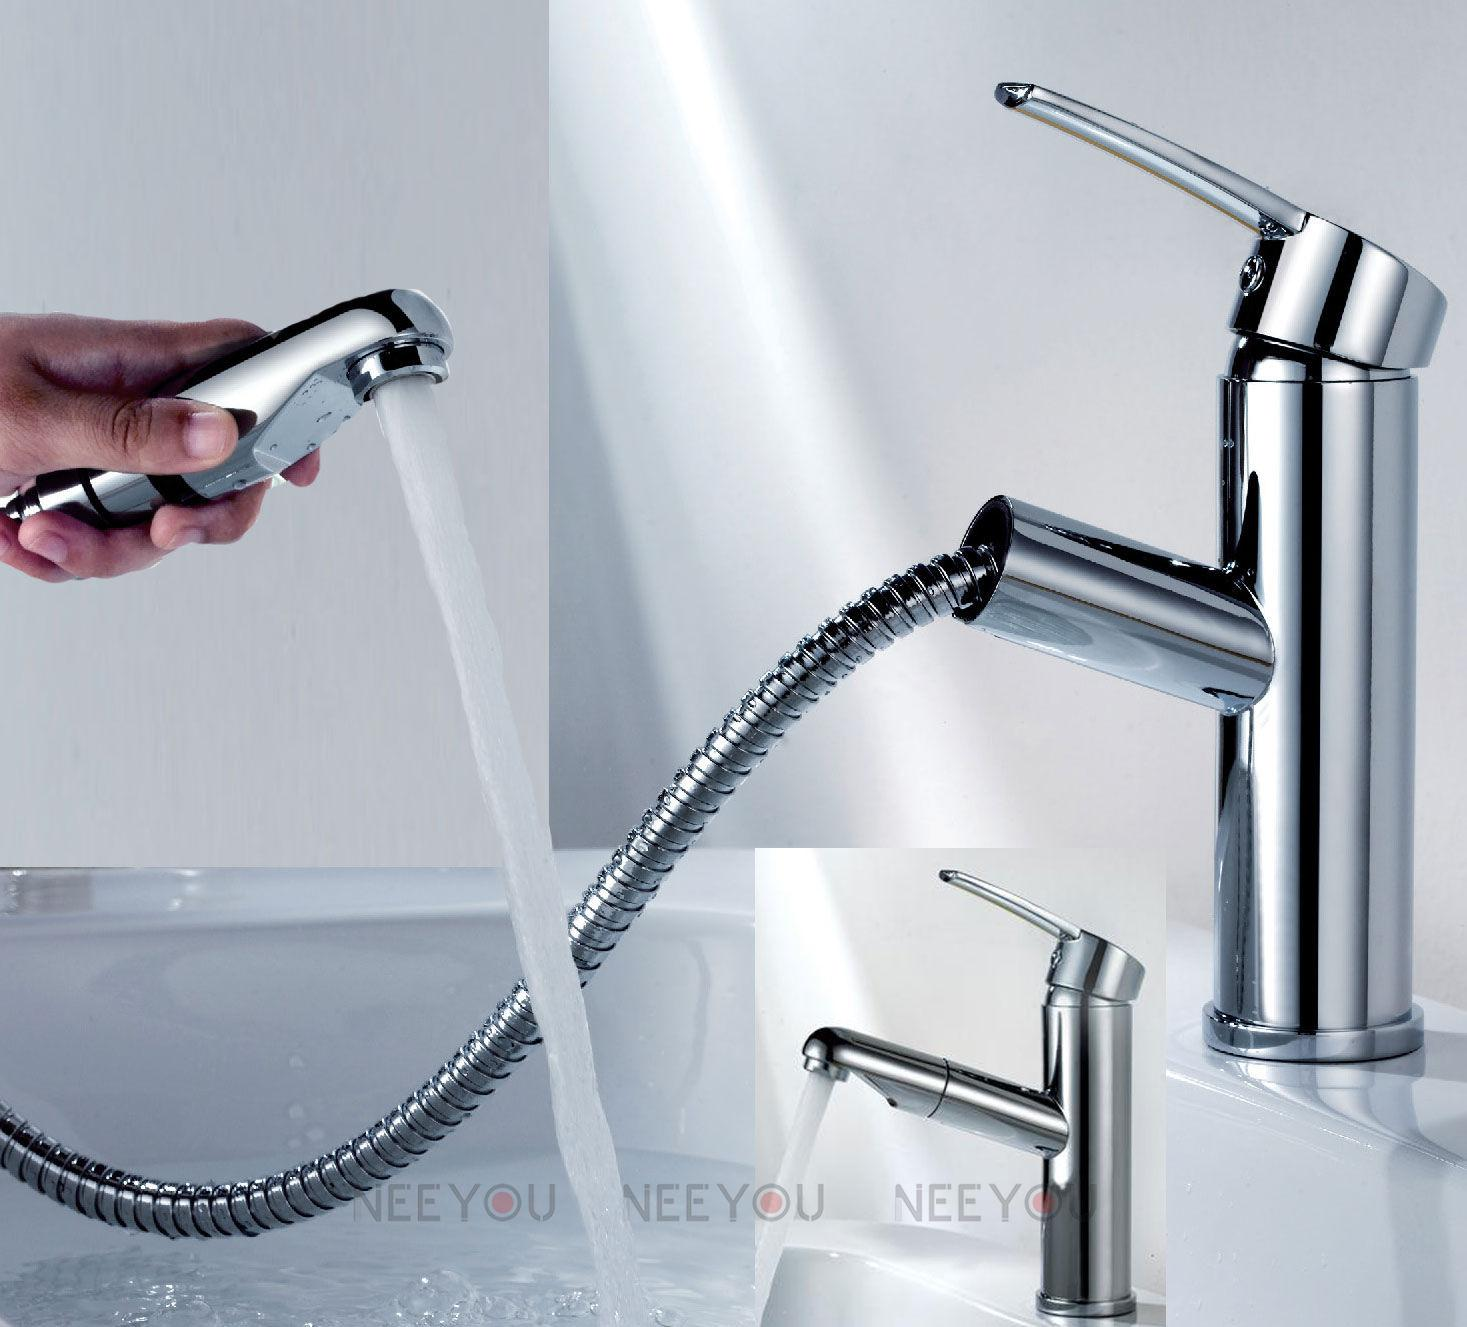 Amazing Porcher Faucet Photos - Faucet Products - austinmartin.us